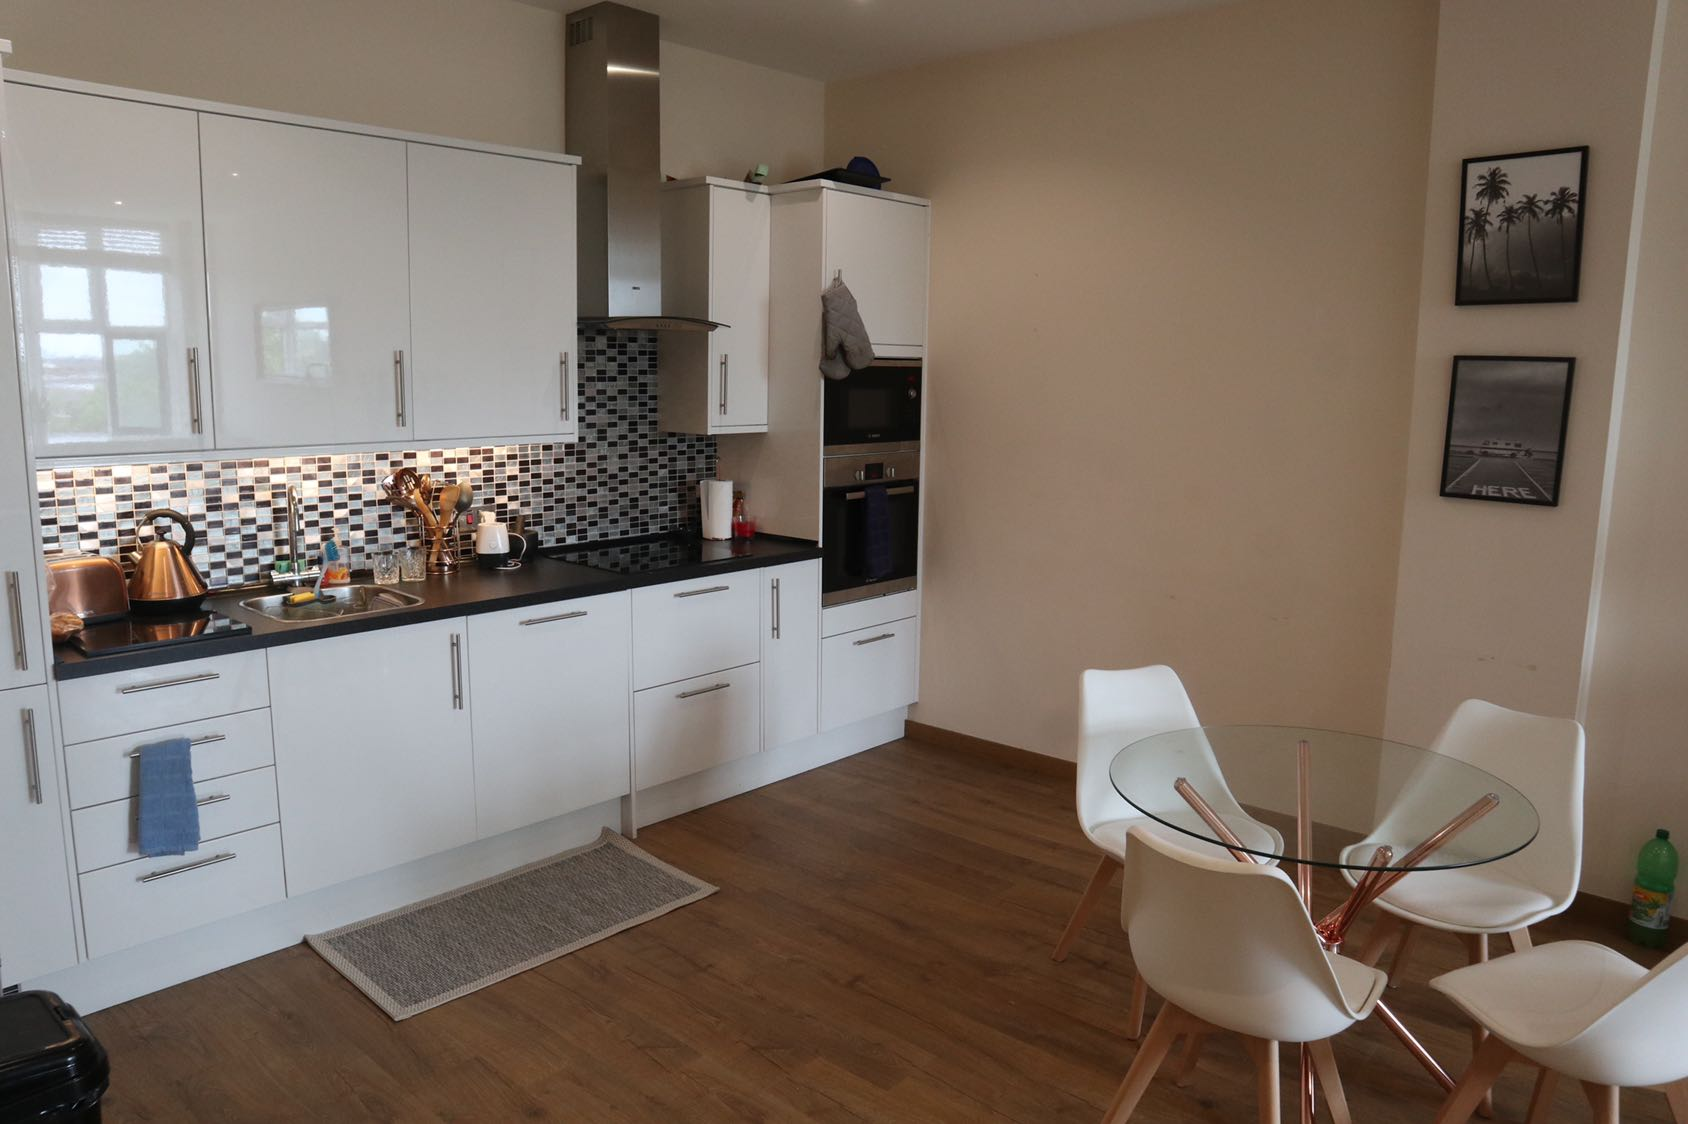 1 room in Chadwell Heath, London, RM6 6DL RoomsLocal image